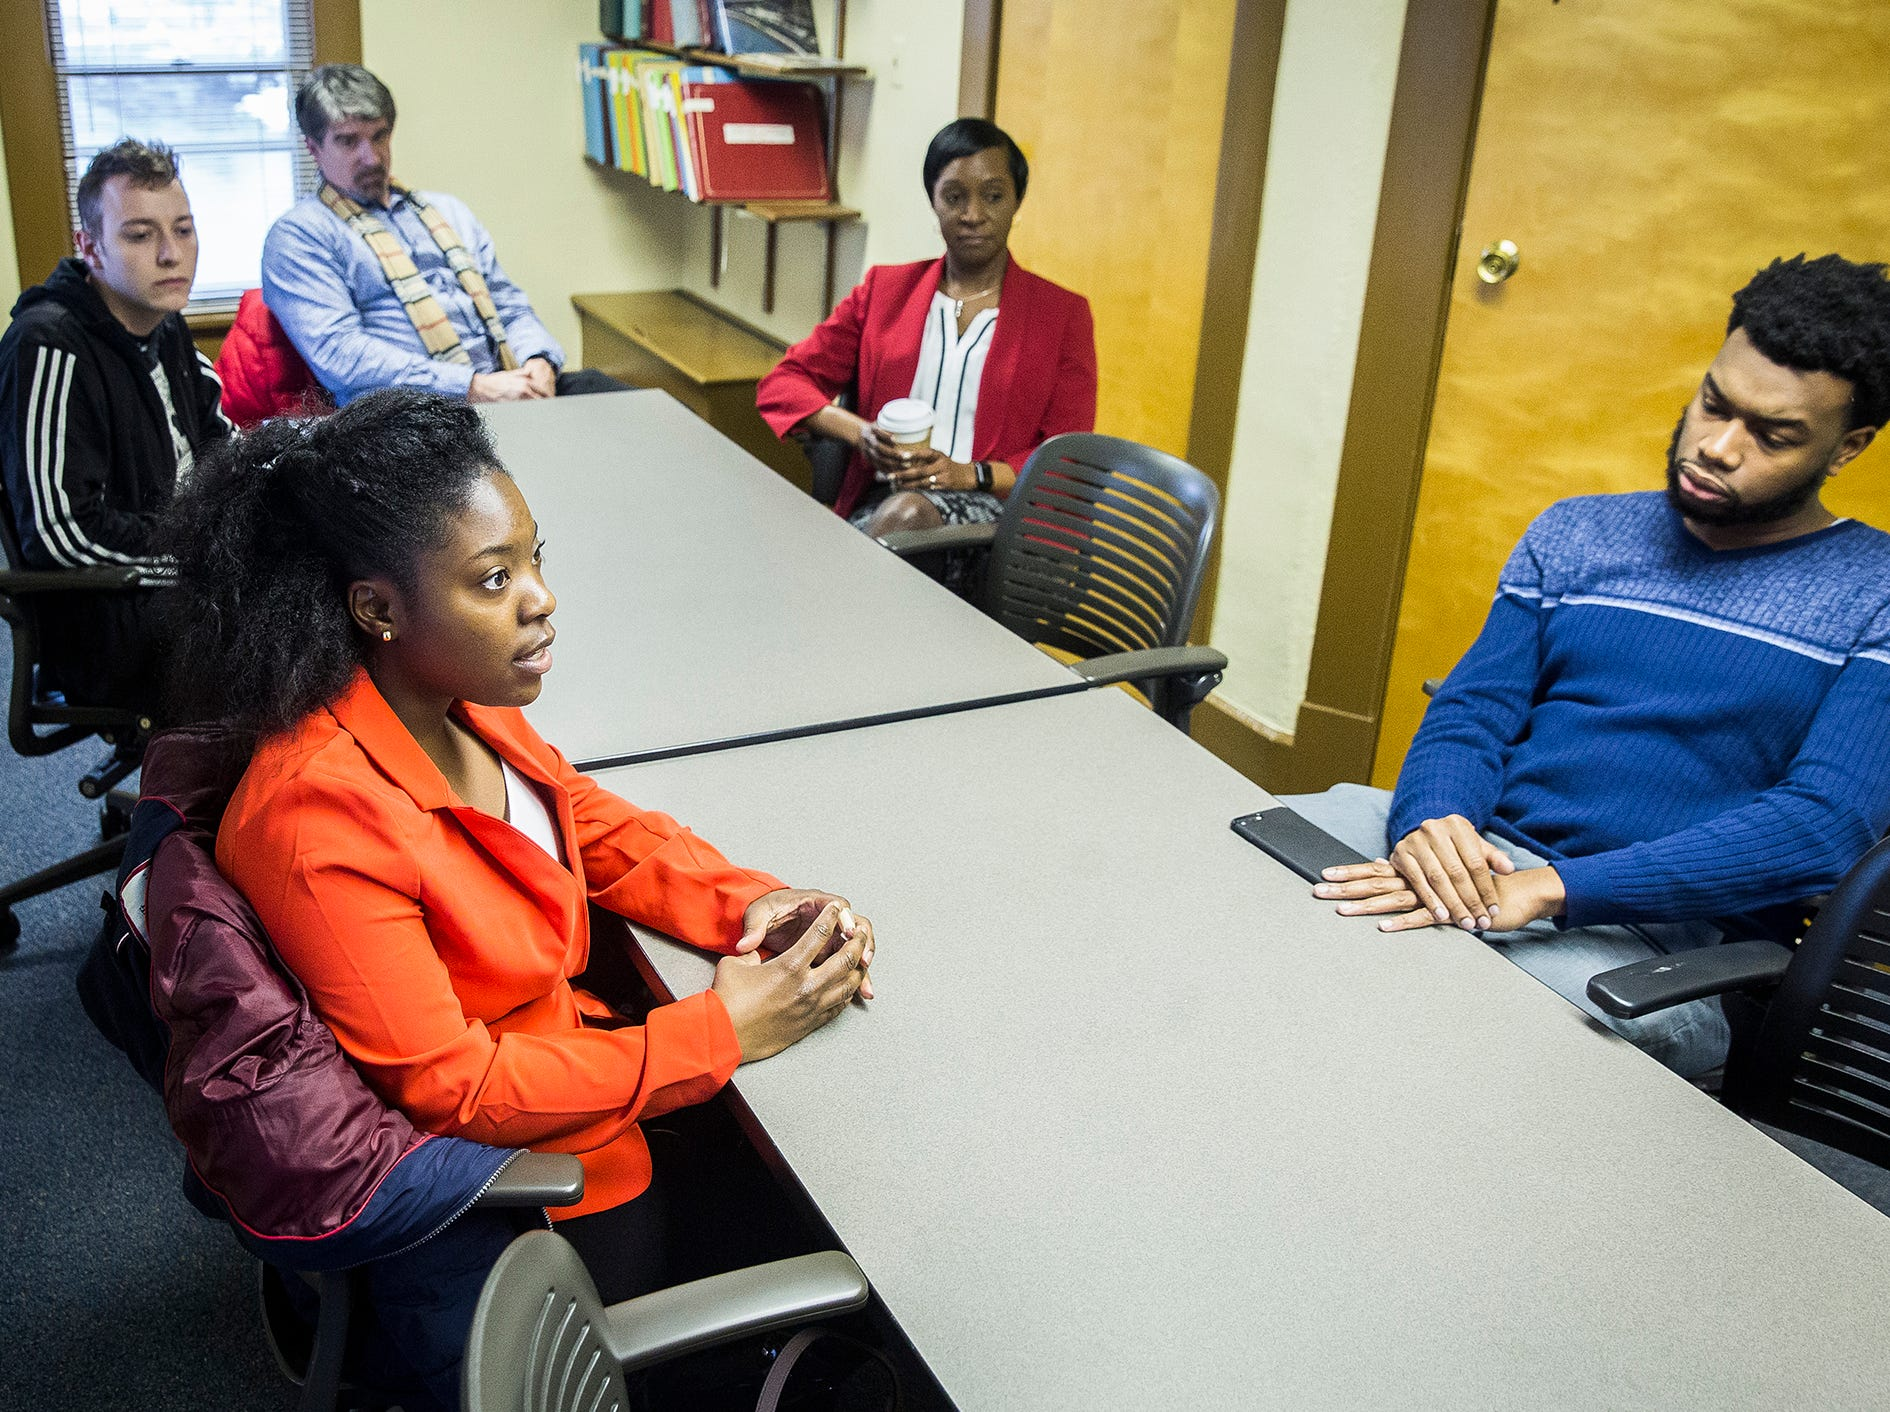 Ball State students Marquice Gee and Ren Walstrom (left) talk to The Star Press during an interview at the  Multicultural Center on McKinley Avenue Wednesday afternoon.  Director Bobby Steele, right, and Student Affairs VP Ro-Anne Royer Engle and spokesman Marc Ransford also were in attendance.